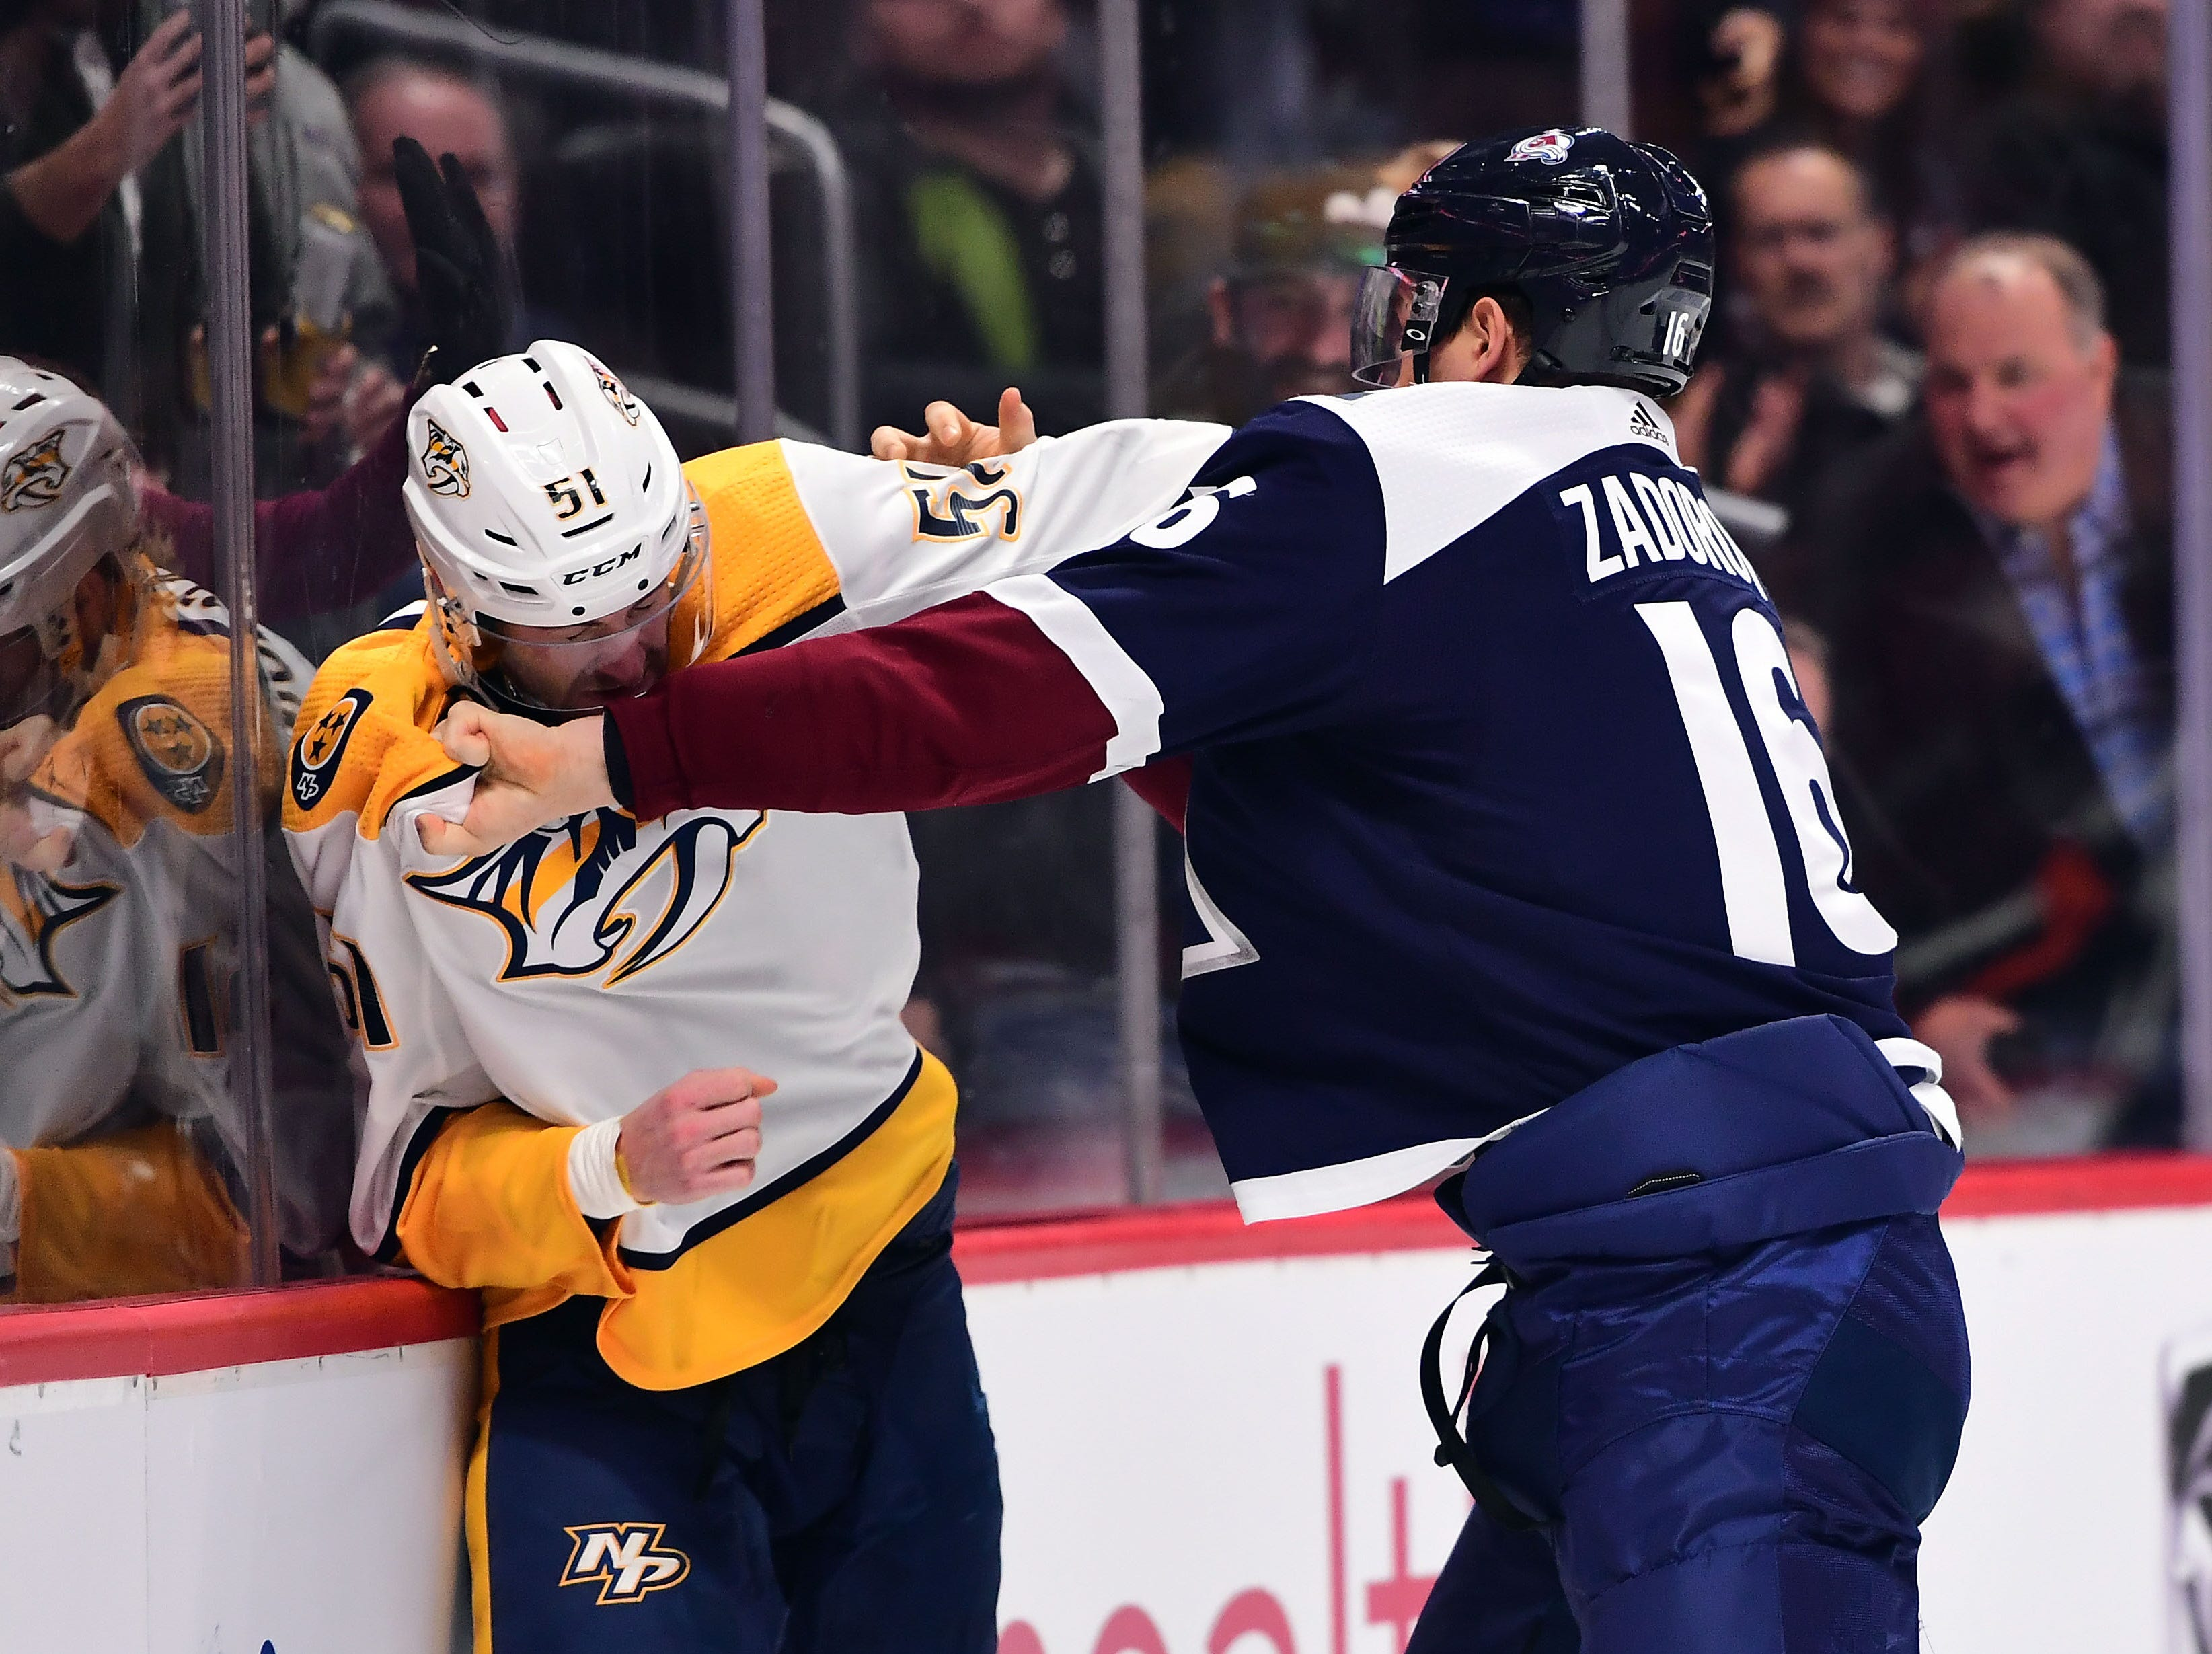 Jan. 21: Nashville Predators' Austin Watson vs. Colorado Avalanche's Nikita Zadorov.